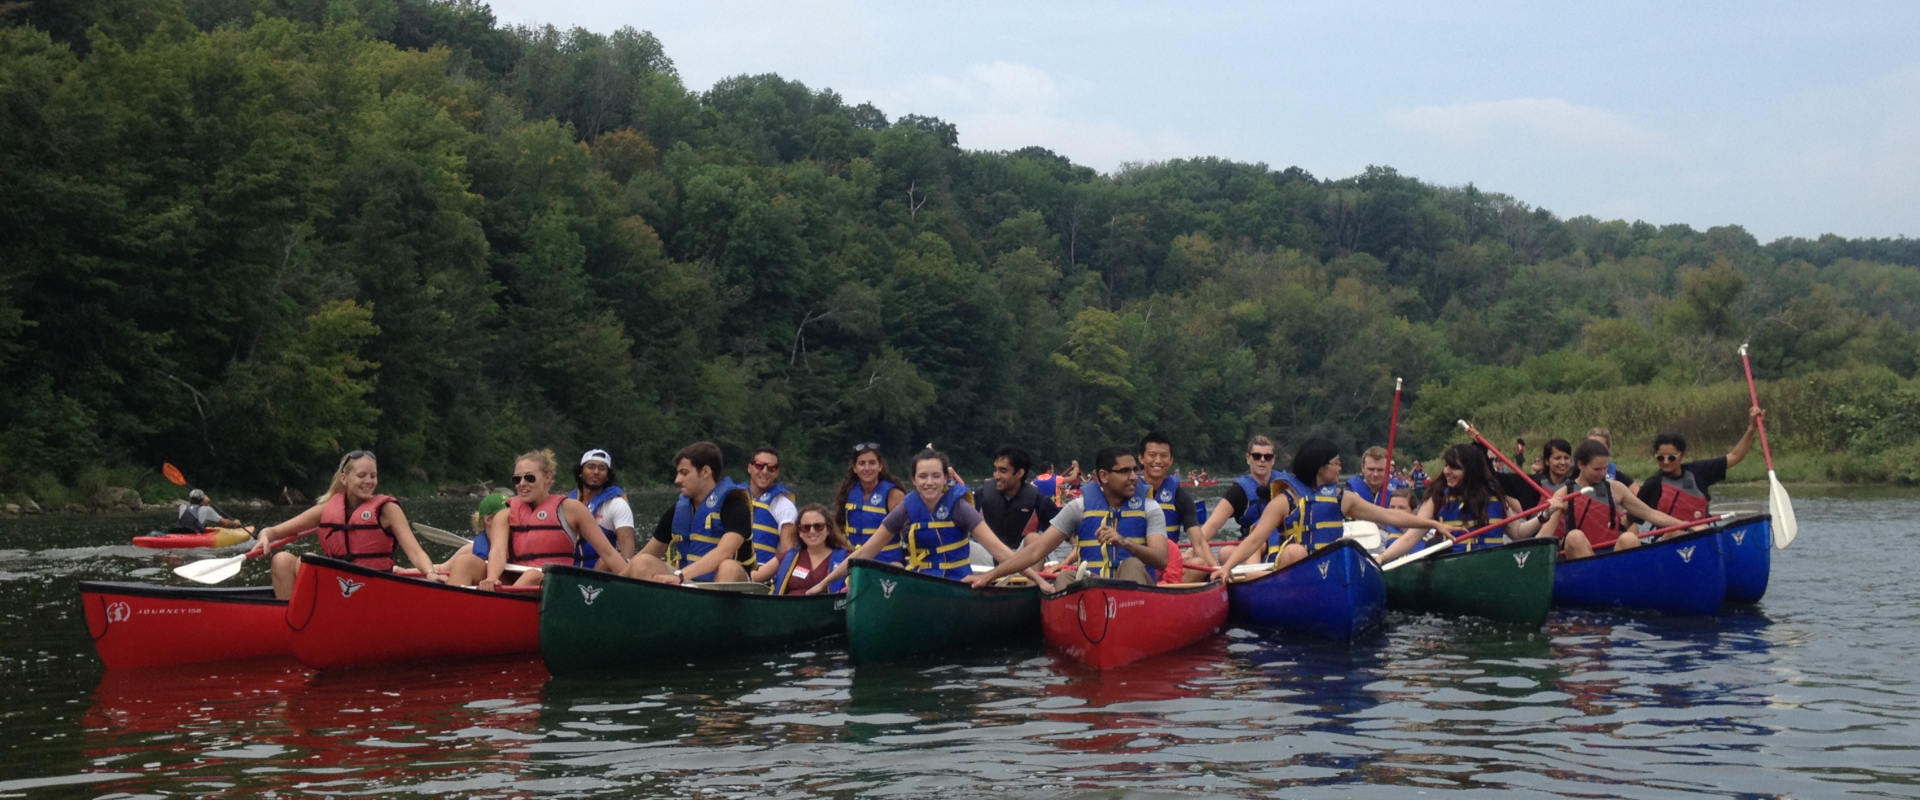 Grand River Corporate paddling experiences near Toronto, Waterloo and London Ontario